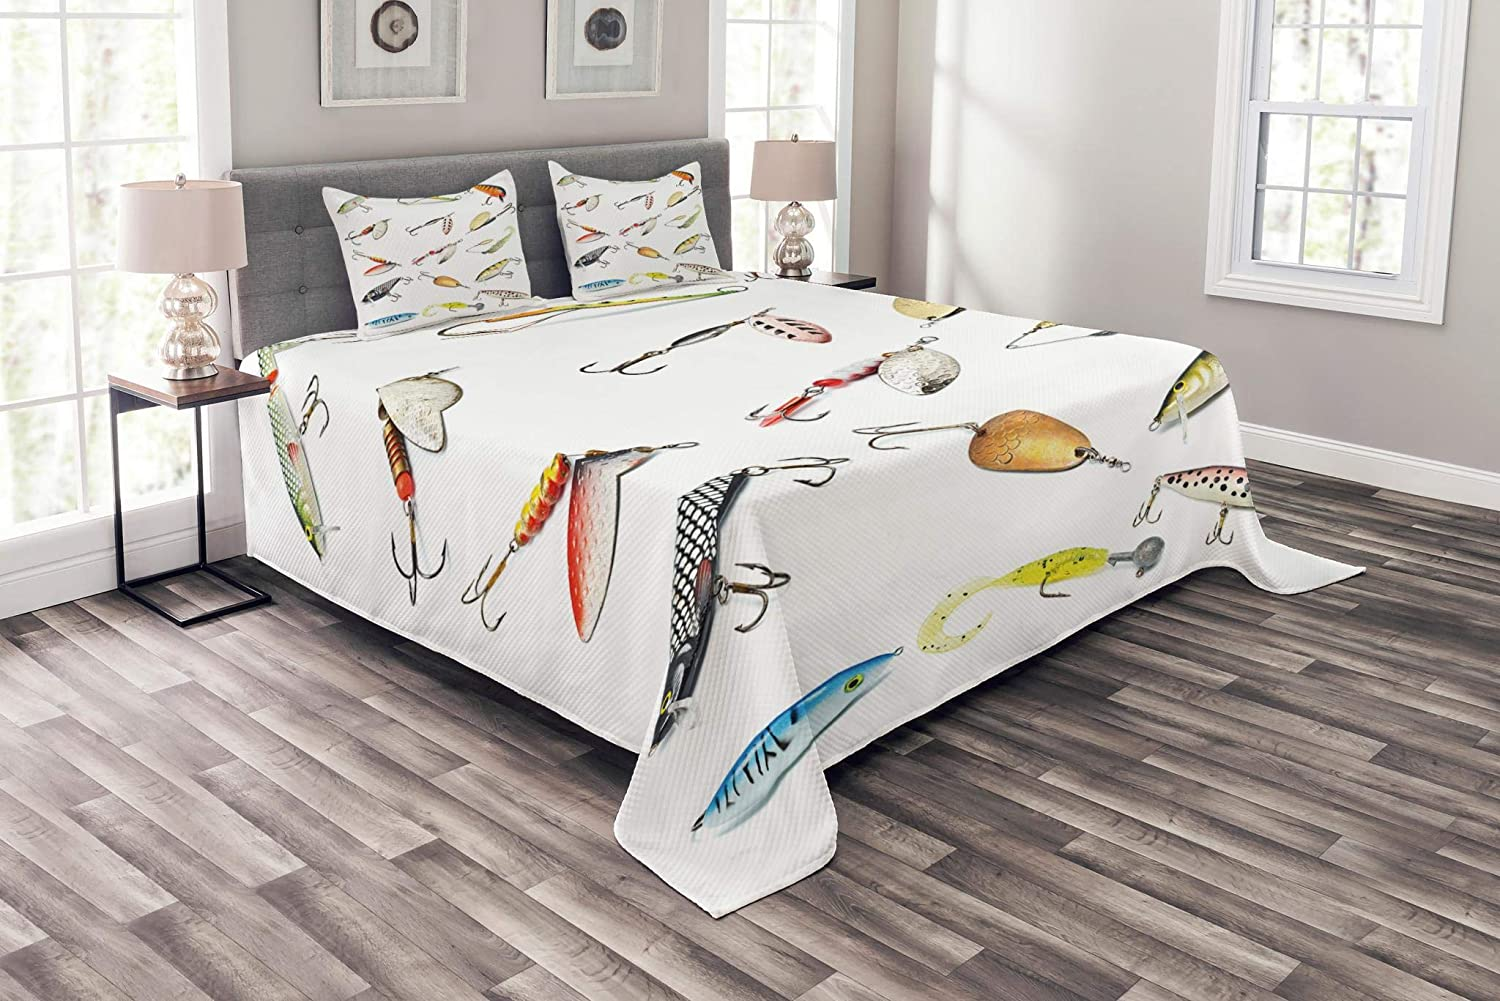 Lunarable Fishing Bedspread Set Twin Size, Cute Hook Set Tool Equipment Hand Gathering Sports Hobby Nautical Theme Artwork, Decorative Quilted 2 Piece Coverlet Set Pillow Sham, Multicolor bed_21309_twin